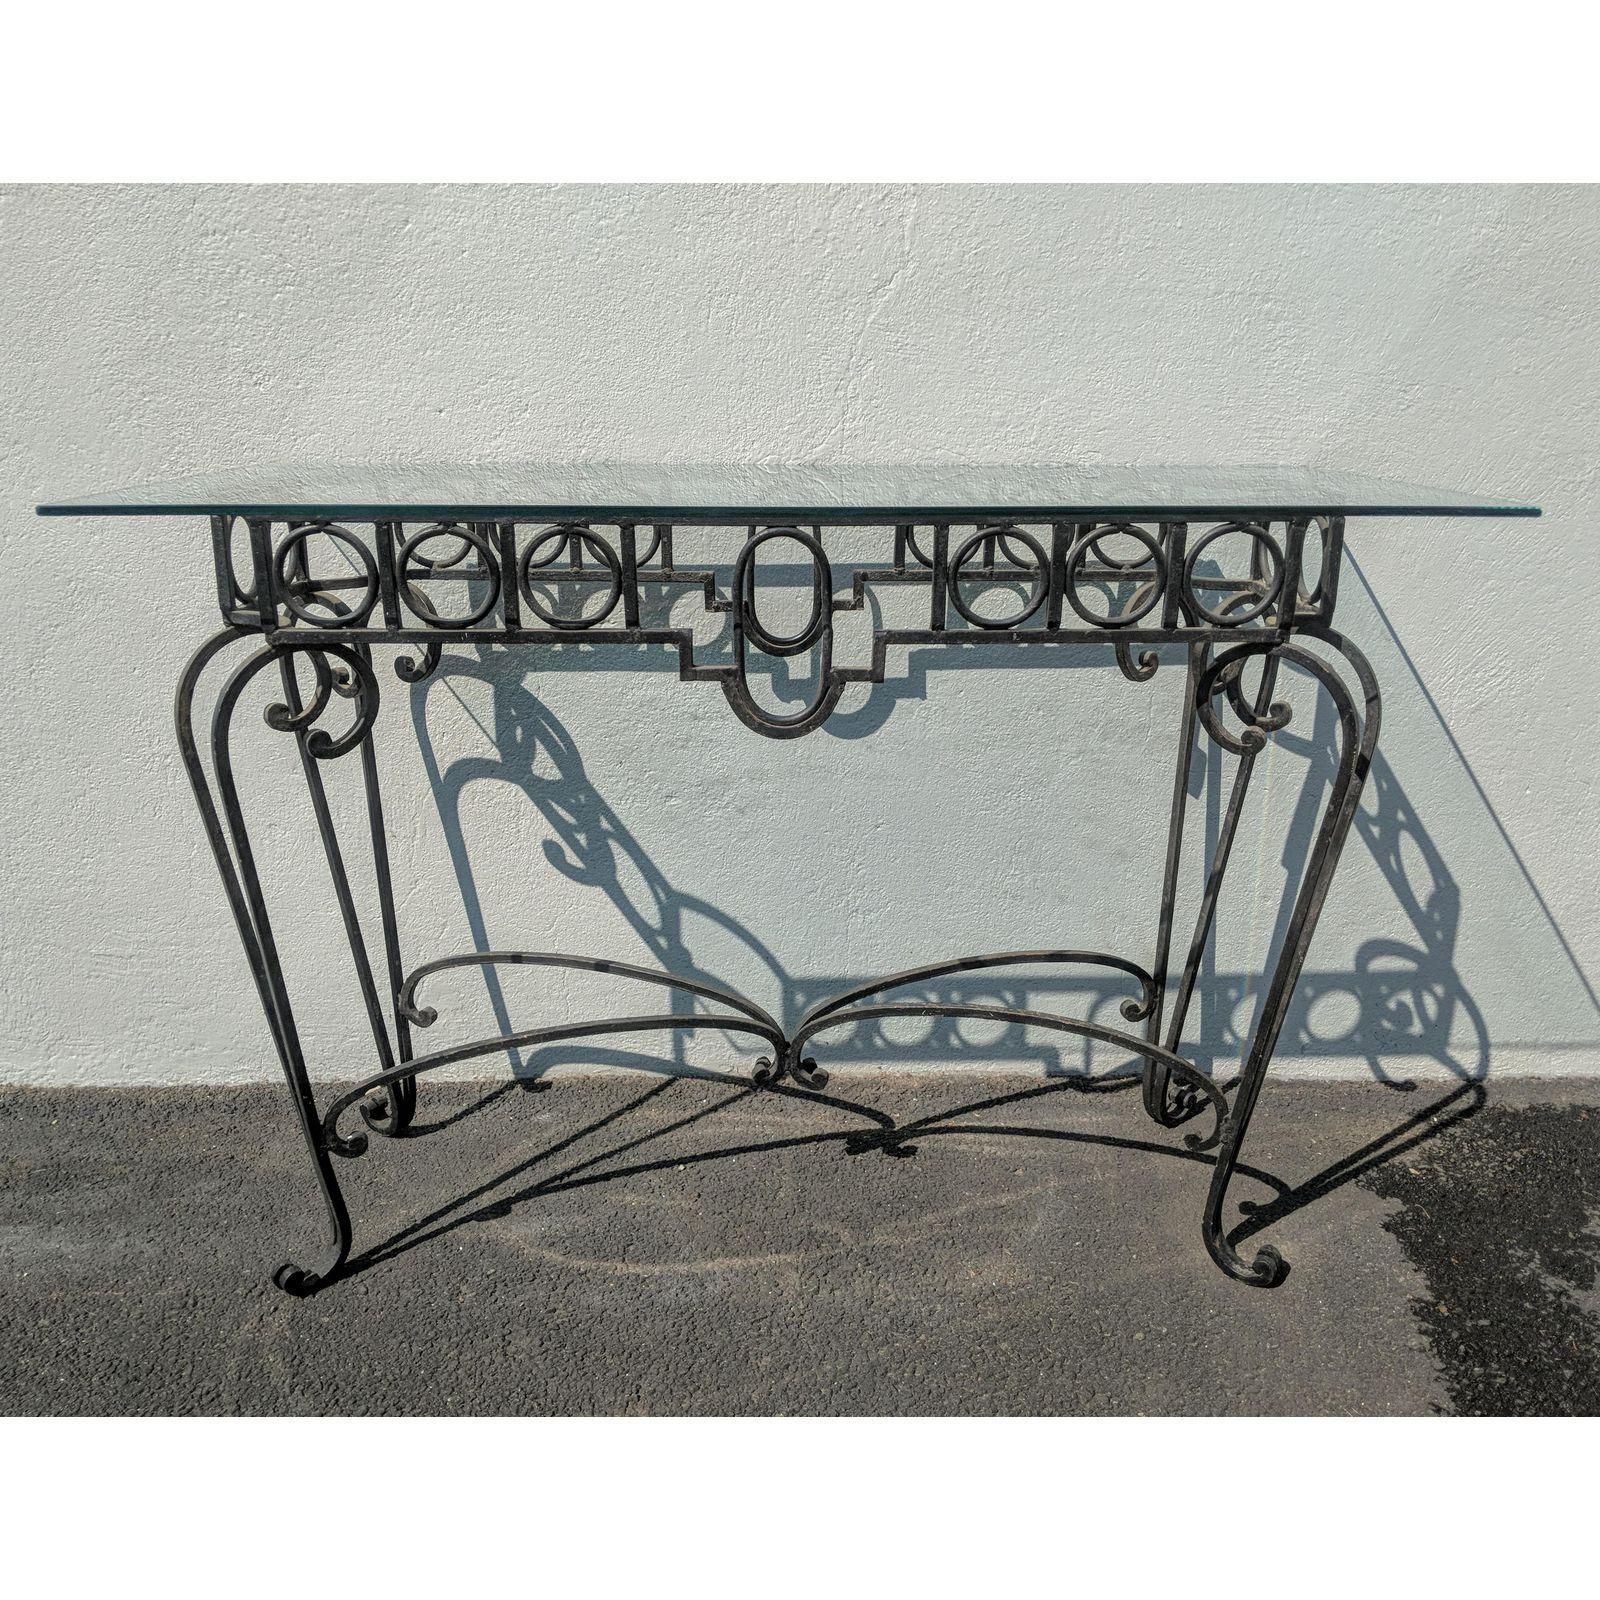 Vintage Wrought Iron Console Table Wrought Iron Console Table Iron Console Table Vintage Furniture